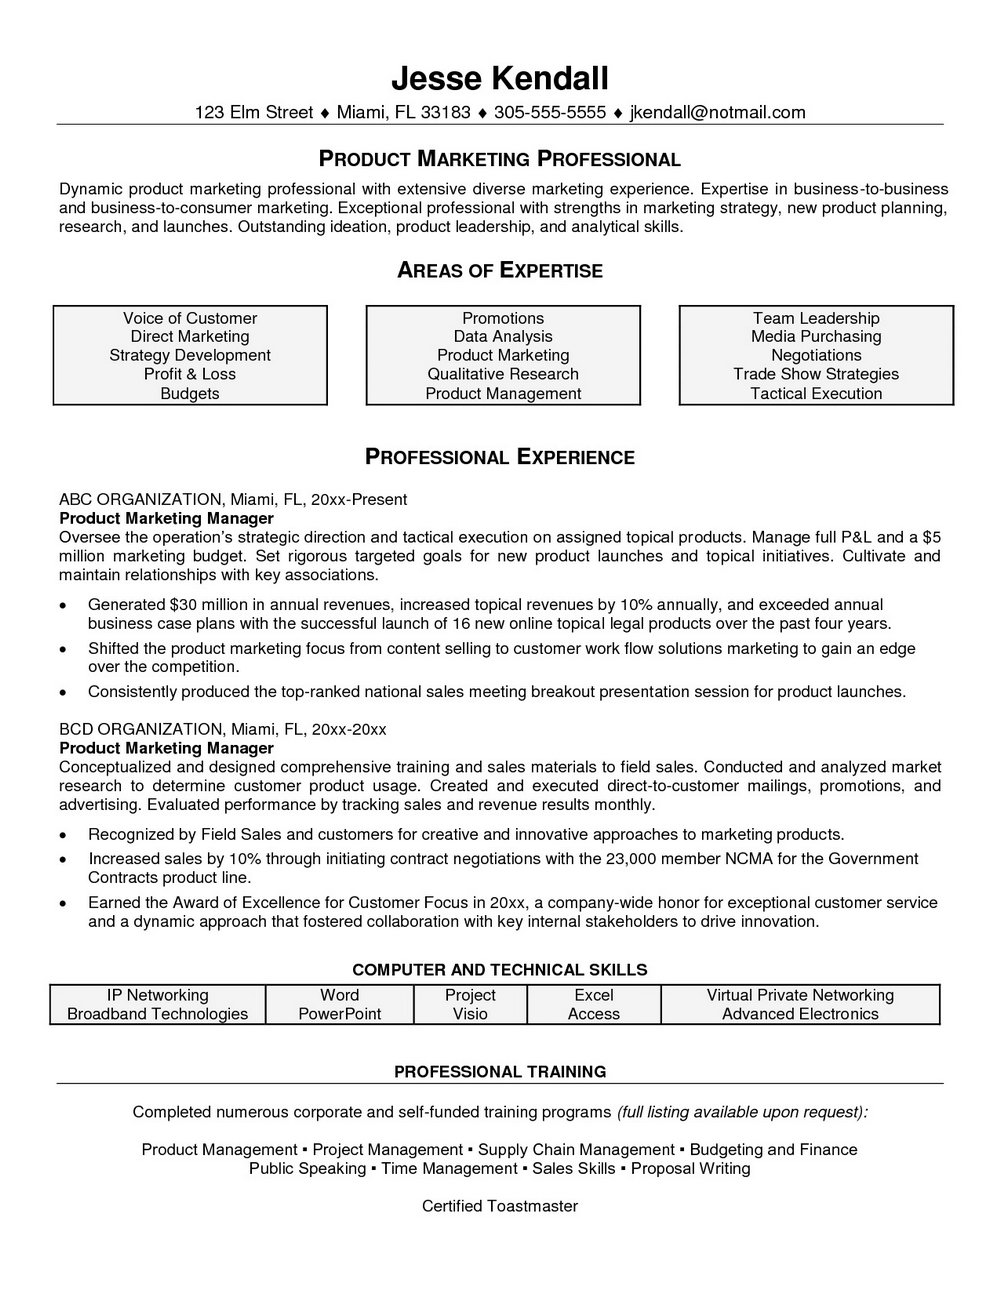 Resume Samples For Marketing Professionals